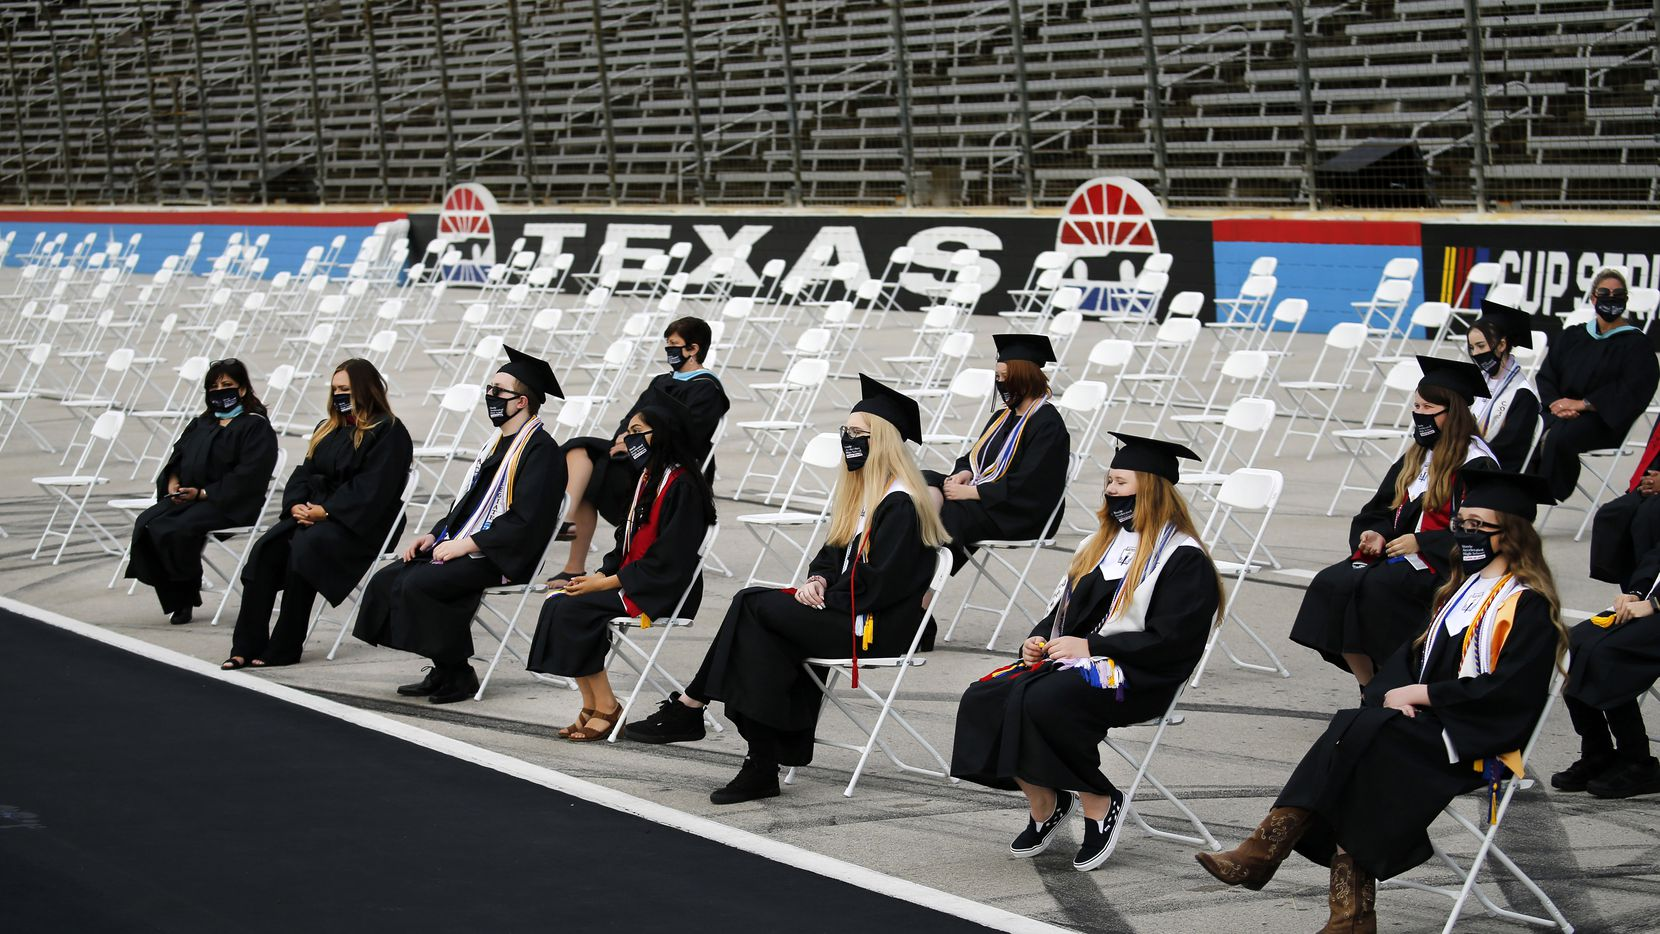 Grand Prairie ISD will host in-person graduations this spring at another major venue: Globe Life Field.